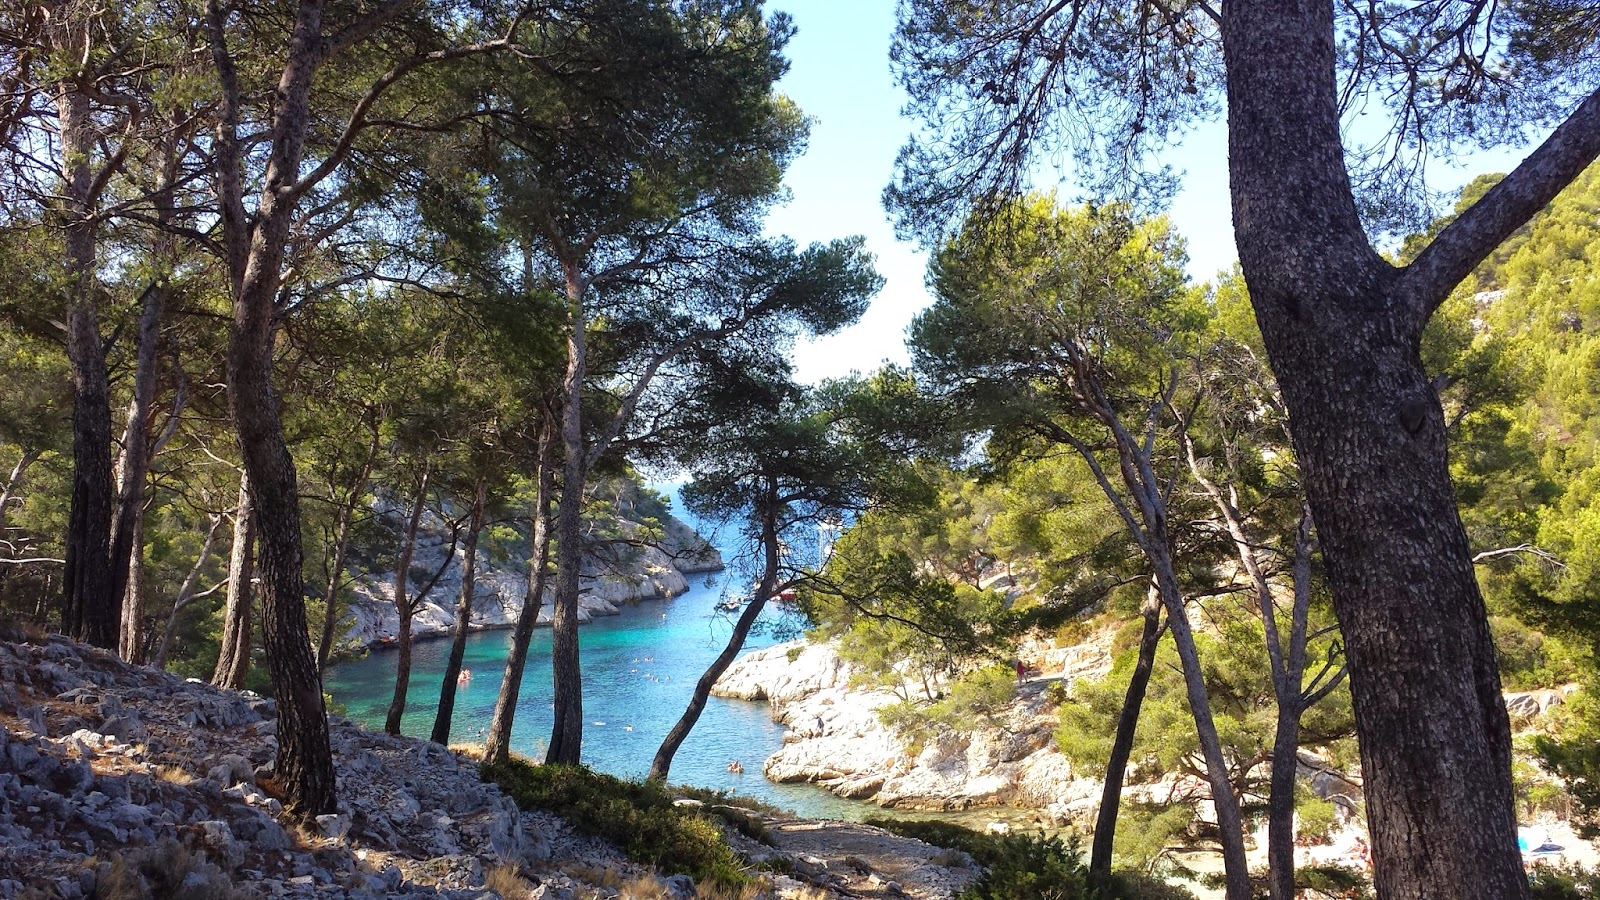 Calanques de Port Pin